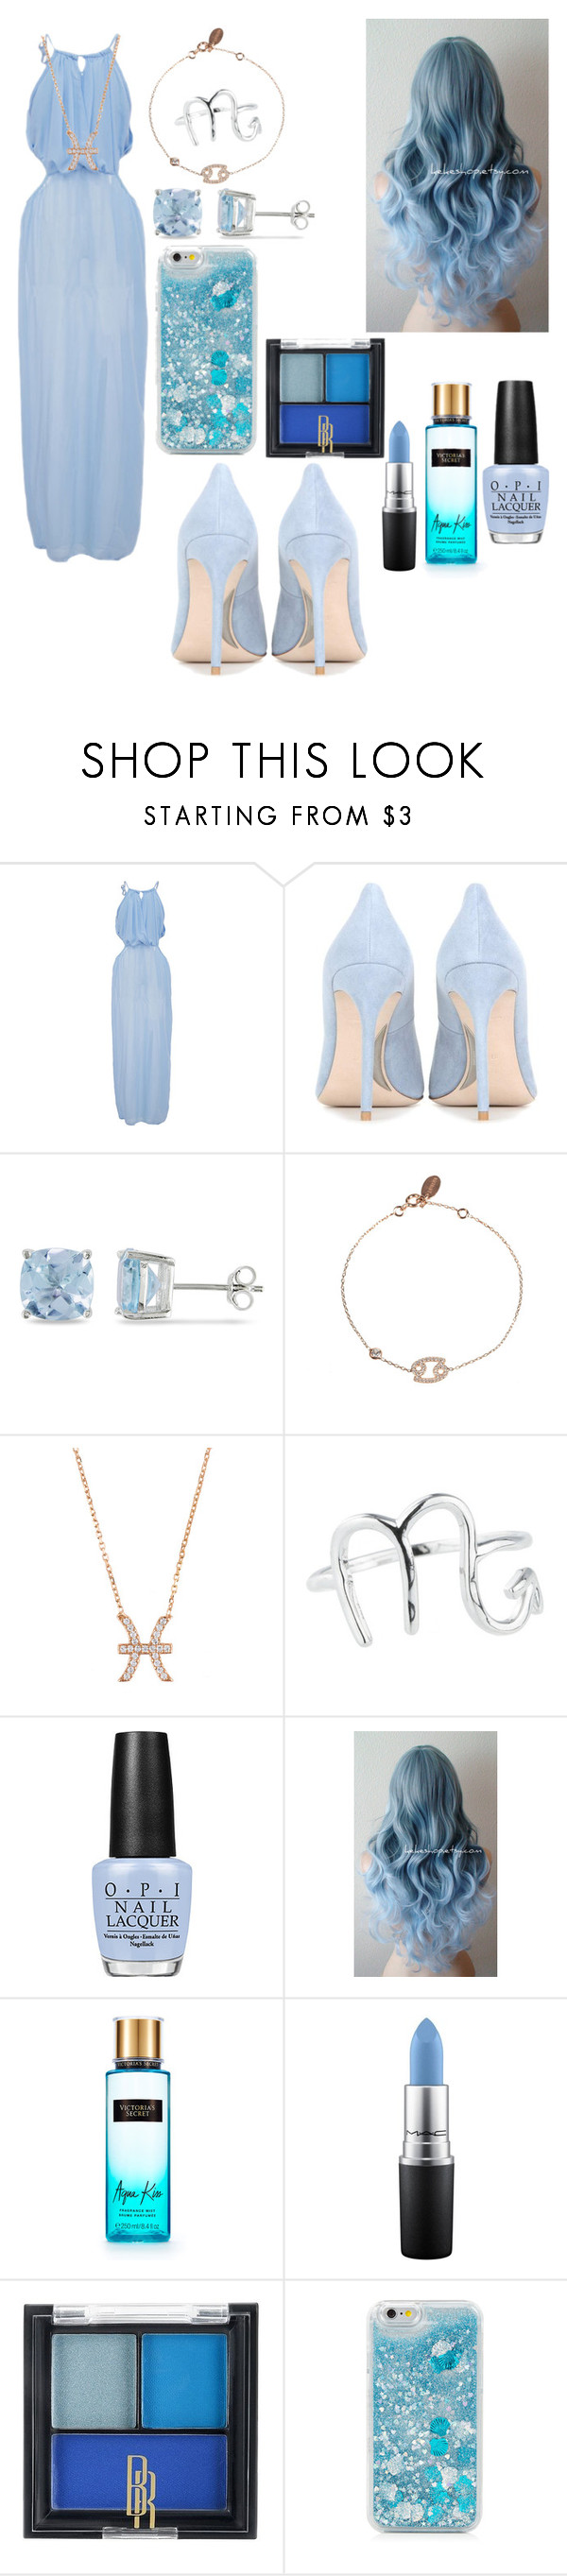 """Water💧"" by ninellaah ❤ liked on Polyvore featuring Miu Miu, Ice, Latelita, Rock 'N Rose, OPI, Victoria's Secret, MAC Cosmetics and Black Radiance"